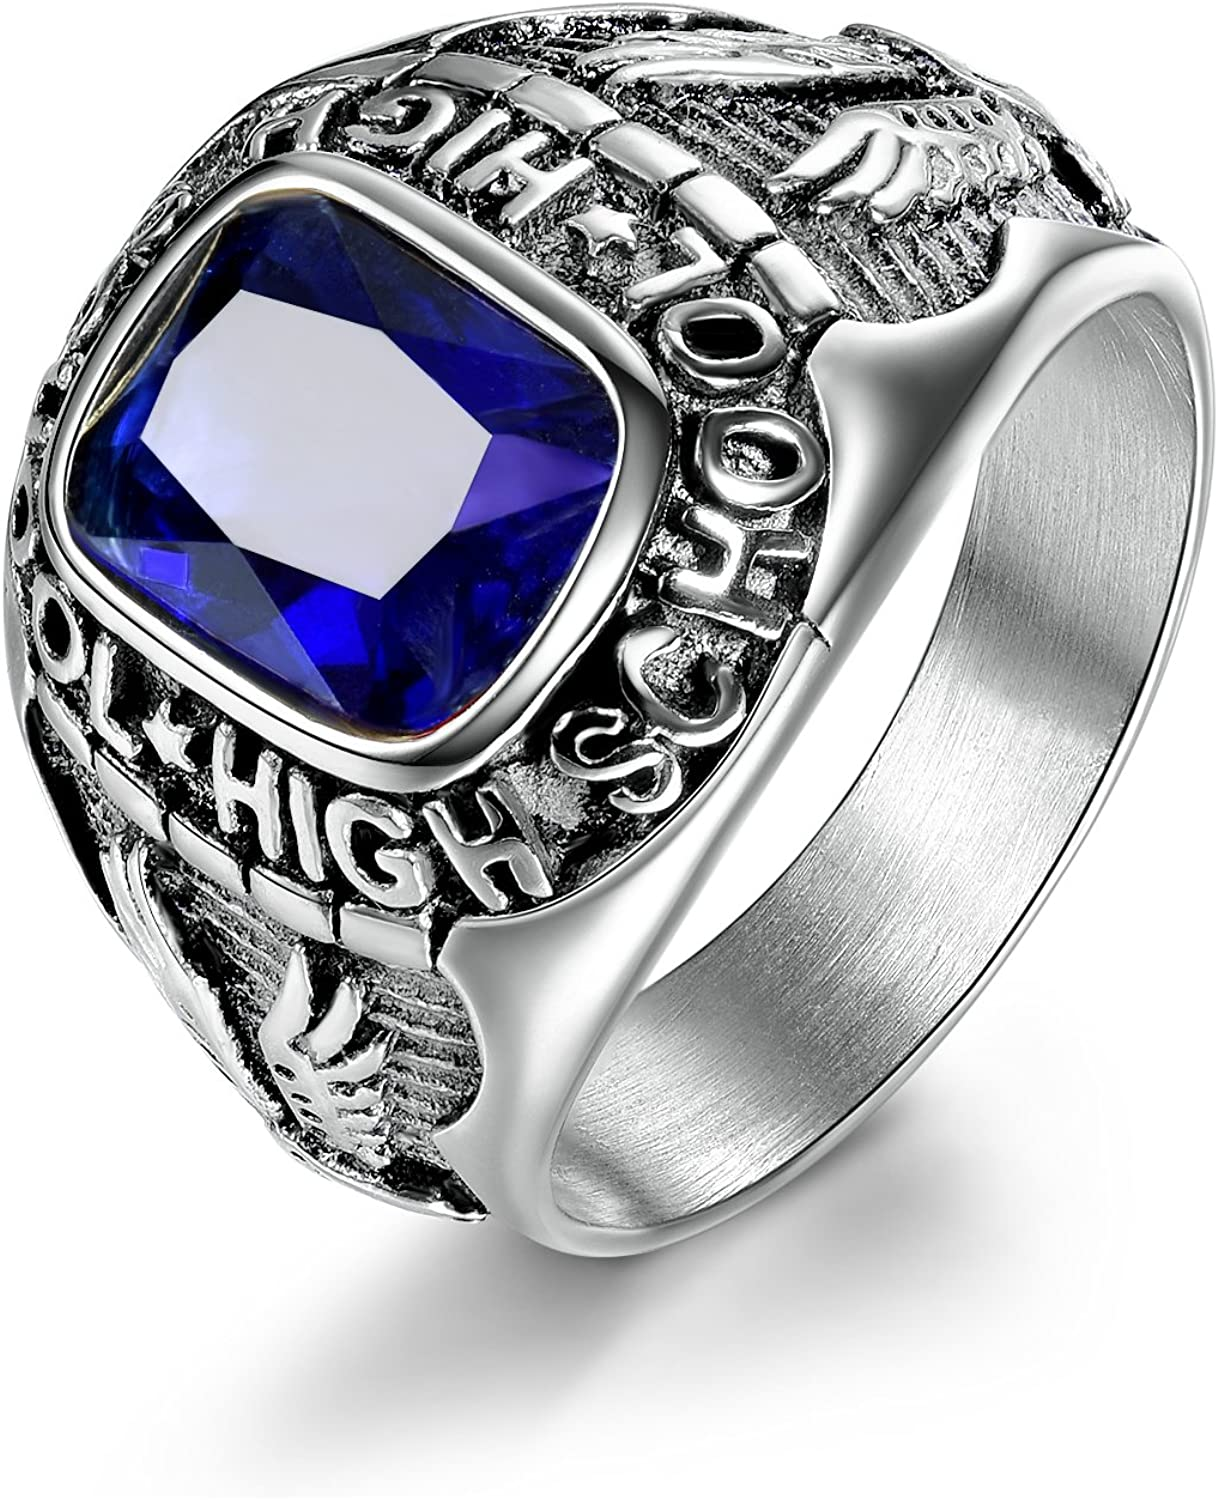 MASOP 316L Stainless Steel Rings for Men with Blue Stones Engraved High School Eagle Size 8-15